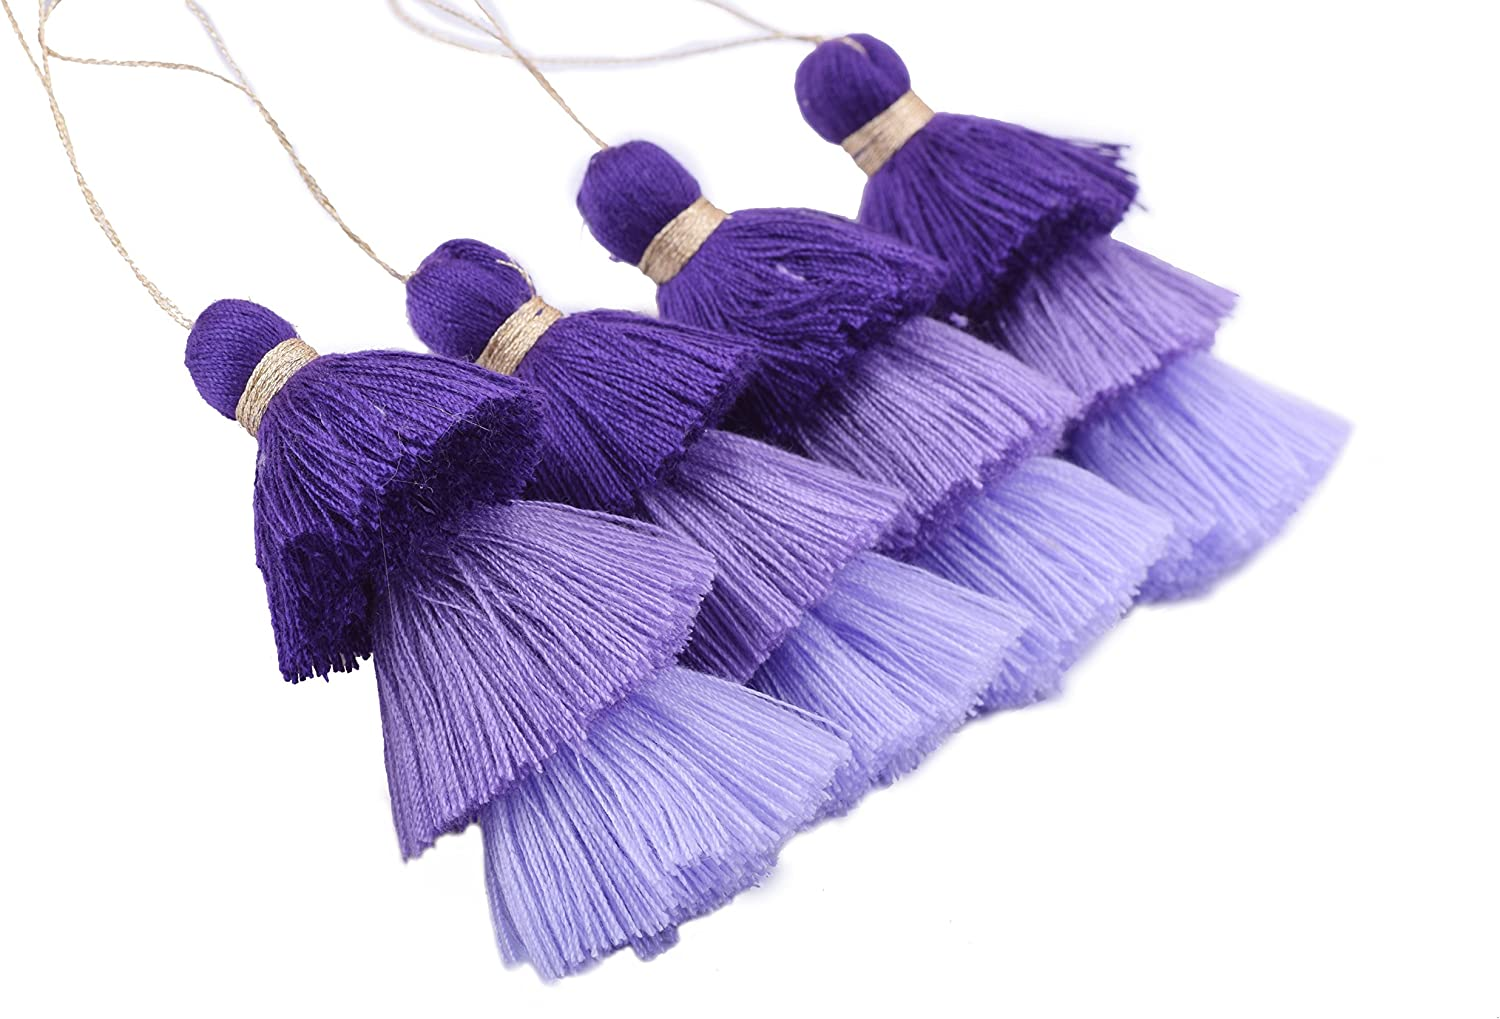 Clothing KONMAY 4pcs Tri-Layered Tassels with Hanging Loop for Jewelry Making